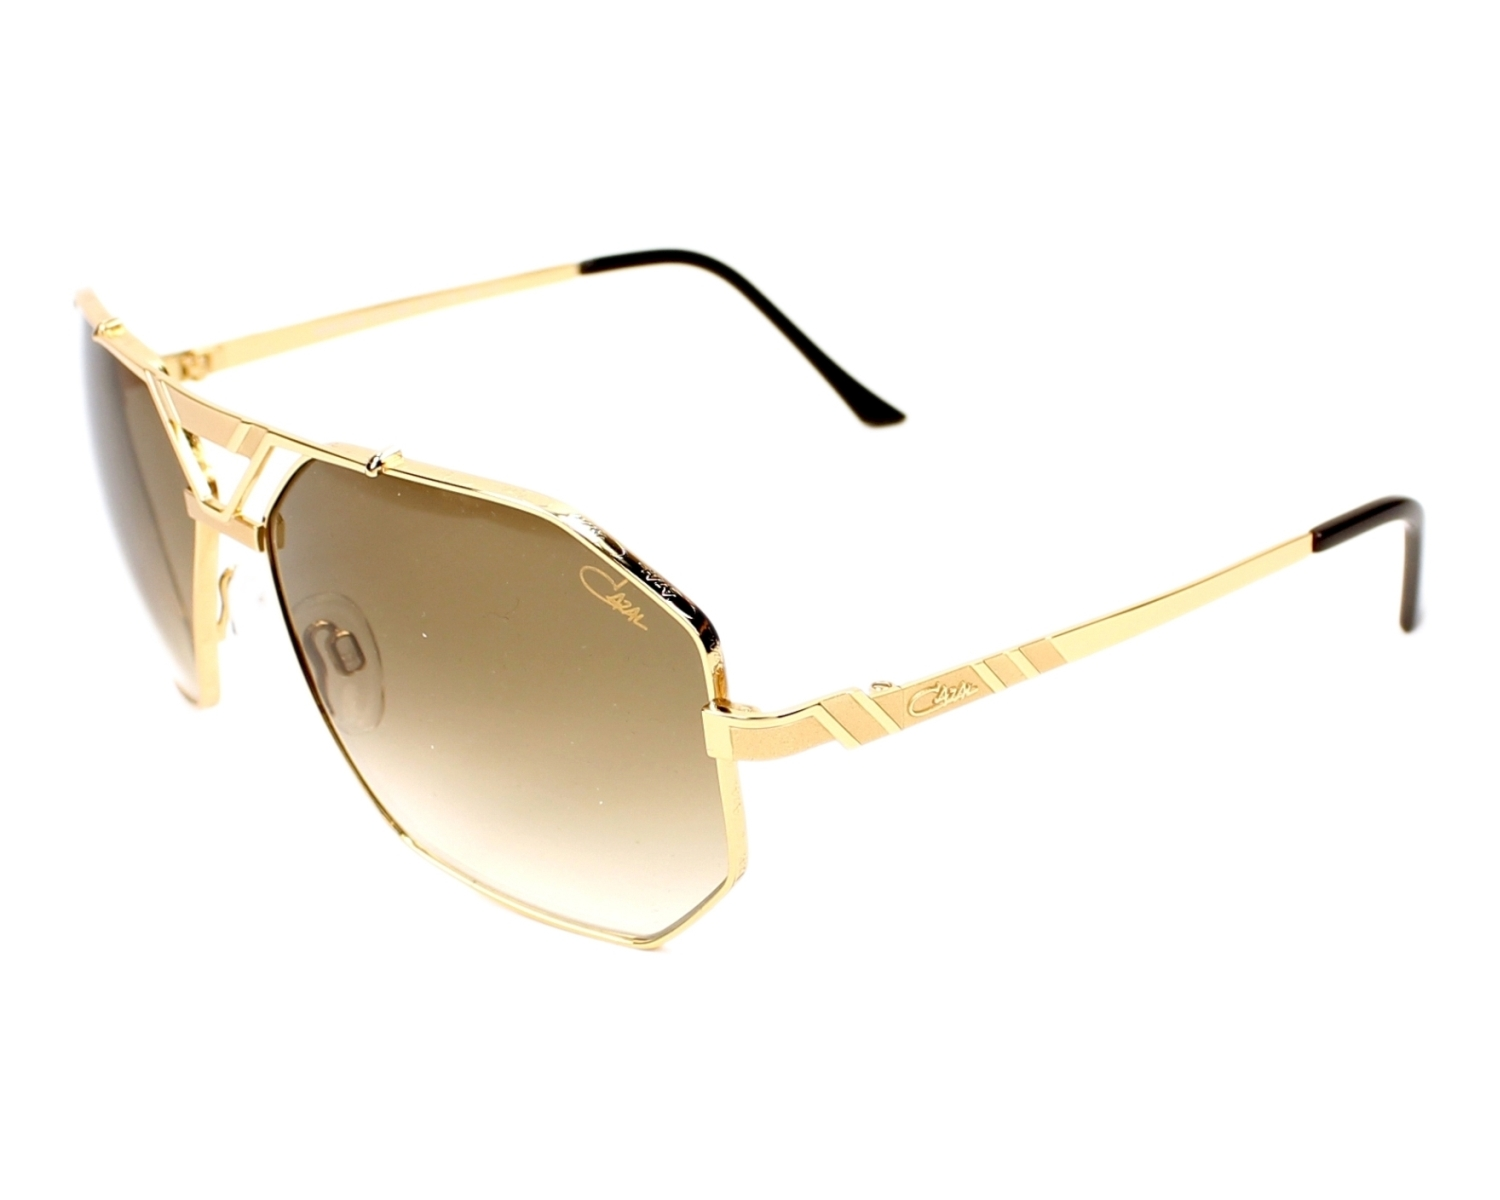 Cazal Sunglasses Gold With Brown Lenses 9058 002 Visionet Us